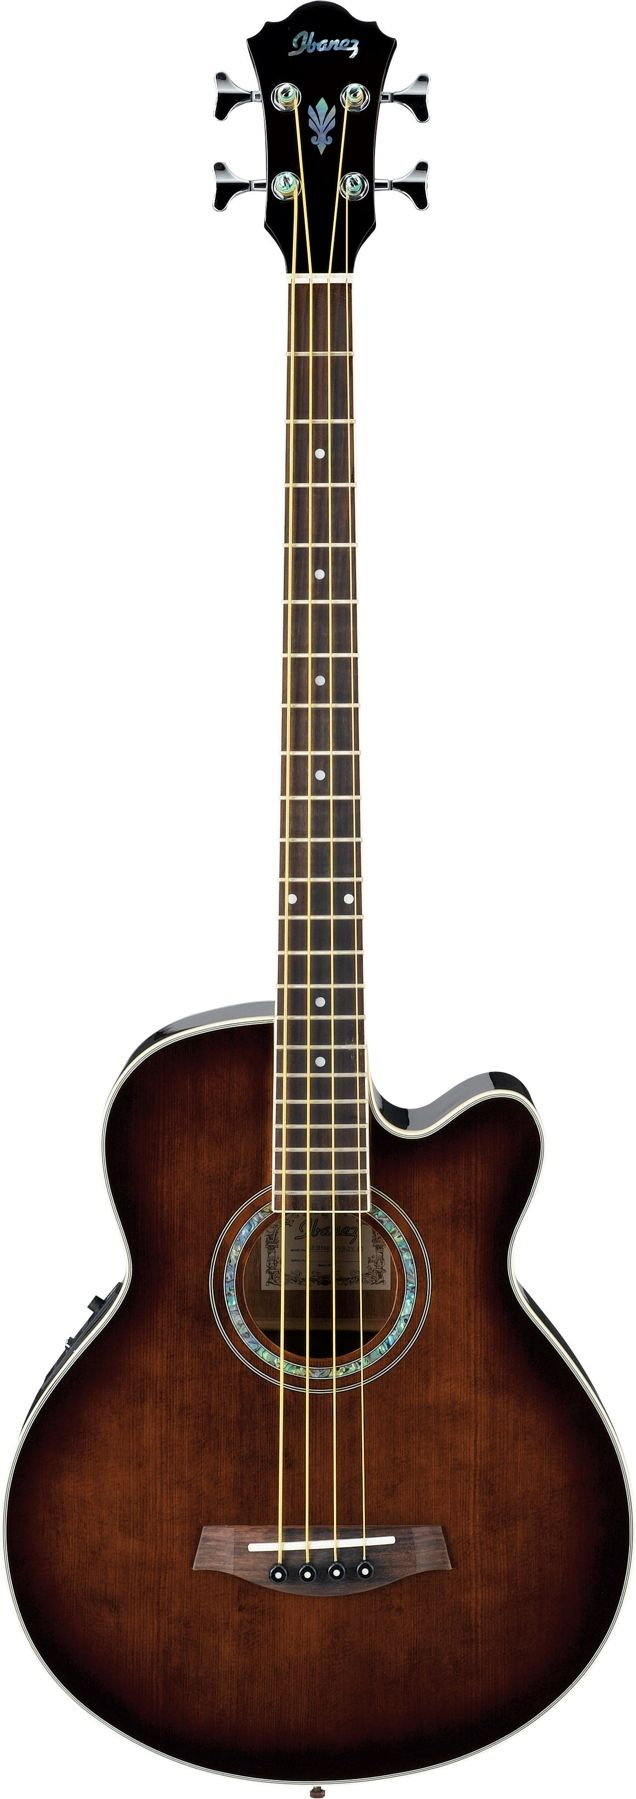 Ibanez AEB10 acoustic electric bass :)    Surely I can learn to play a 4-string...right?